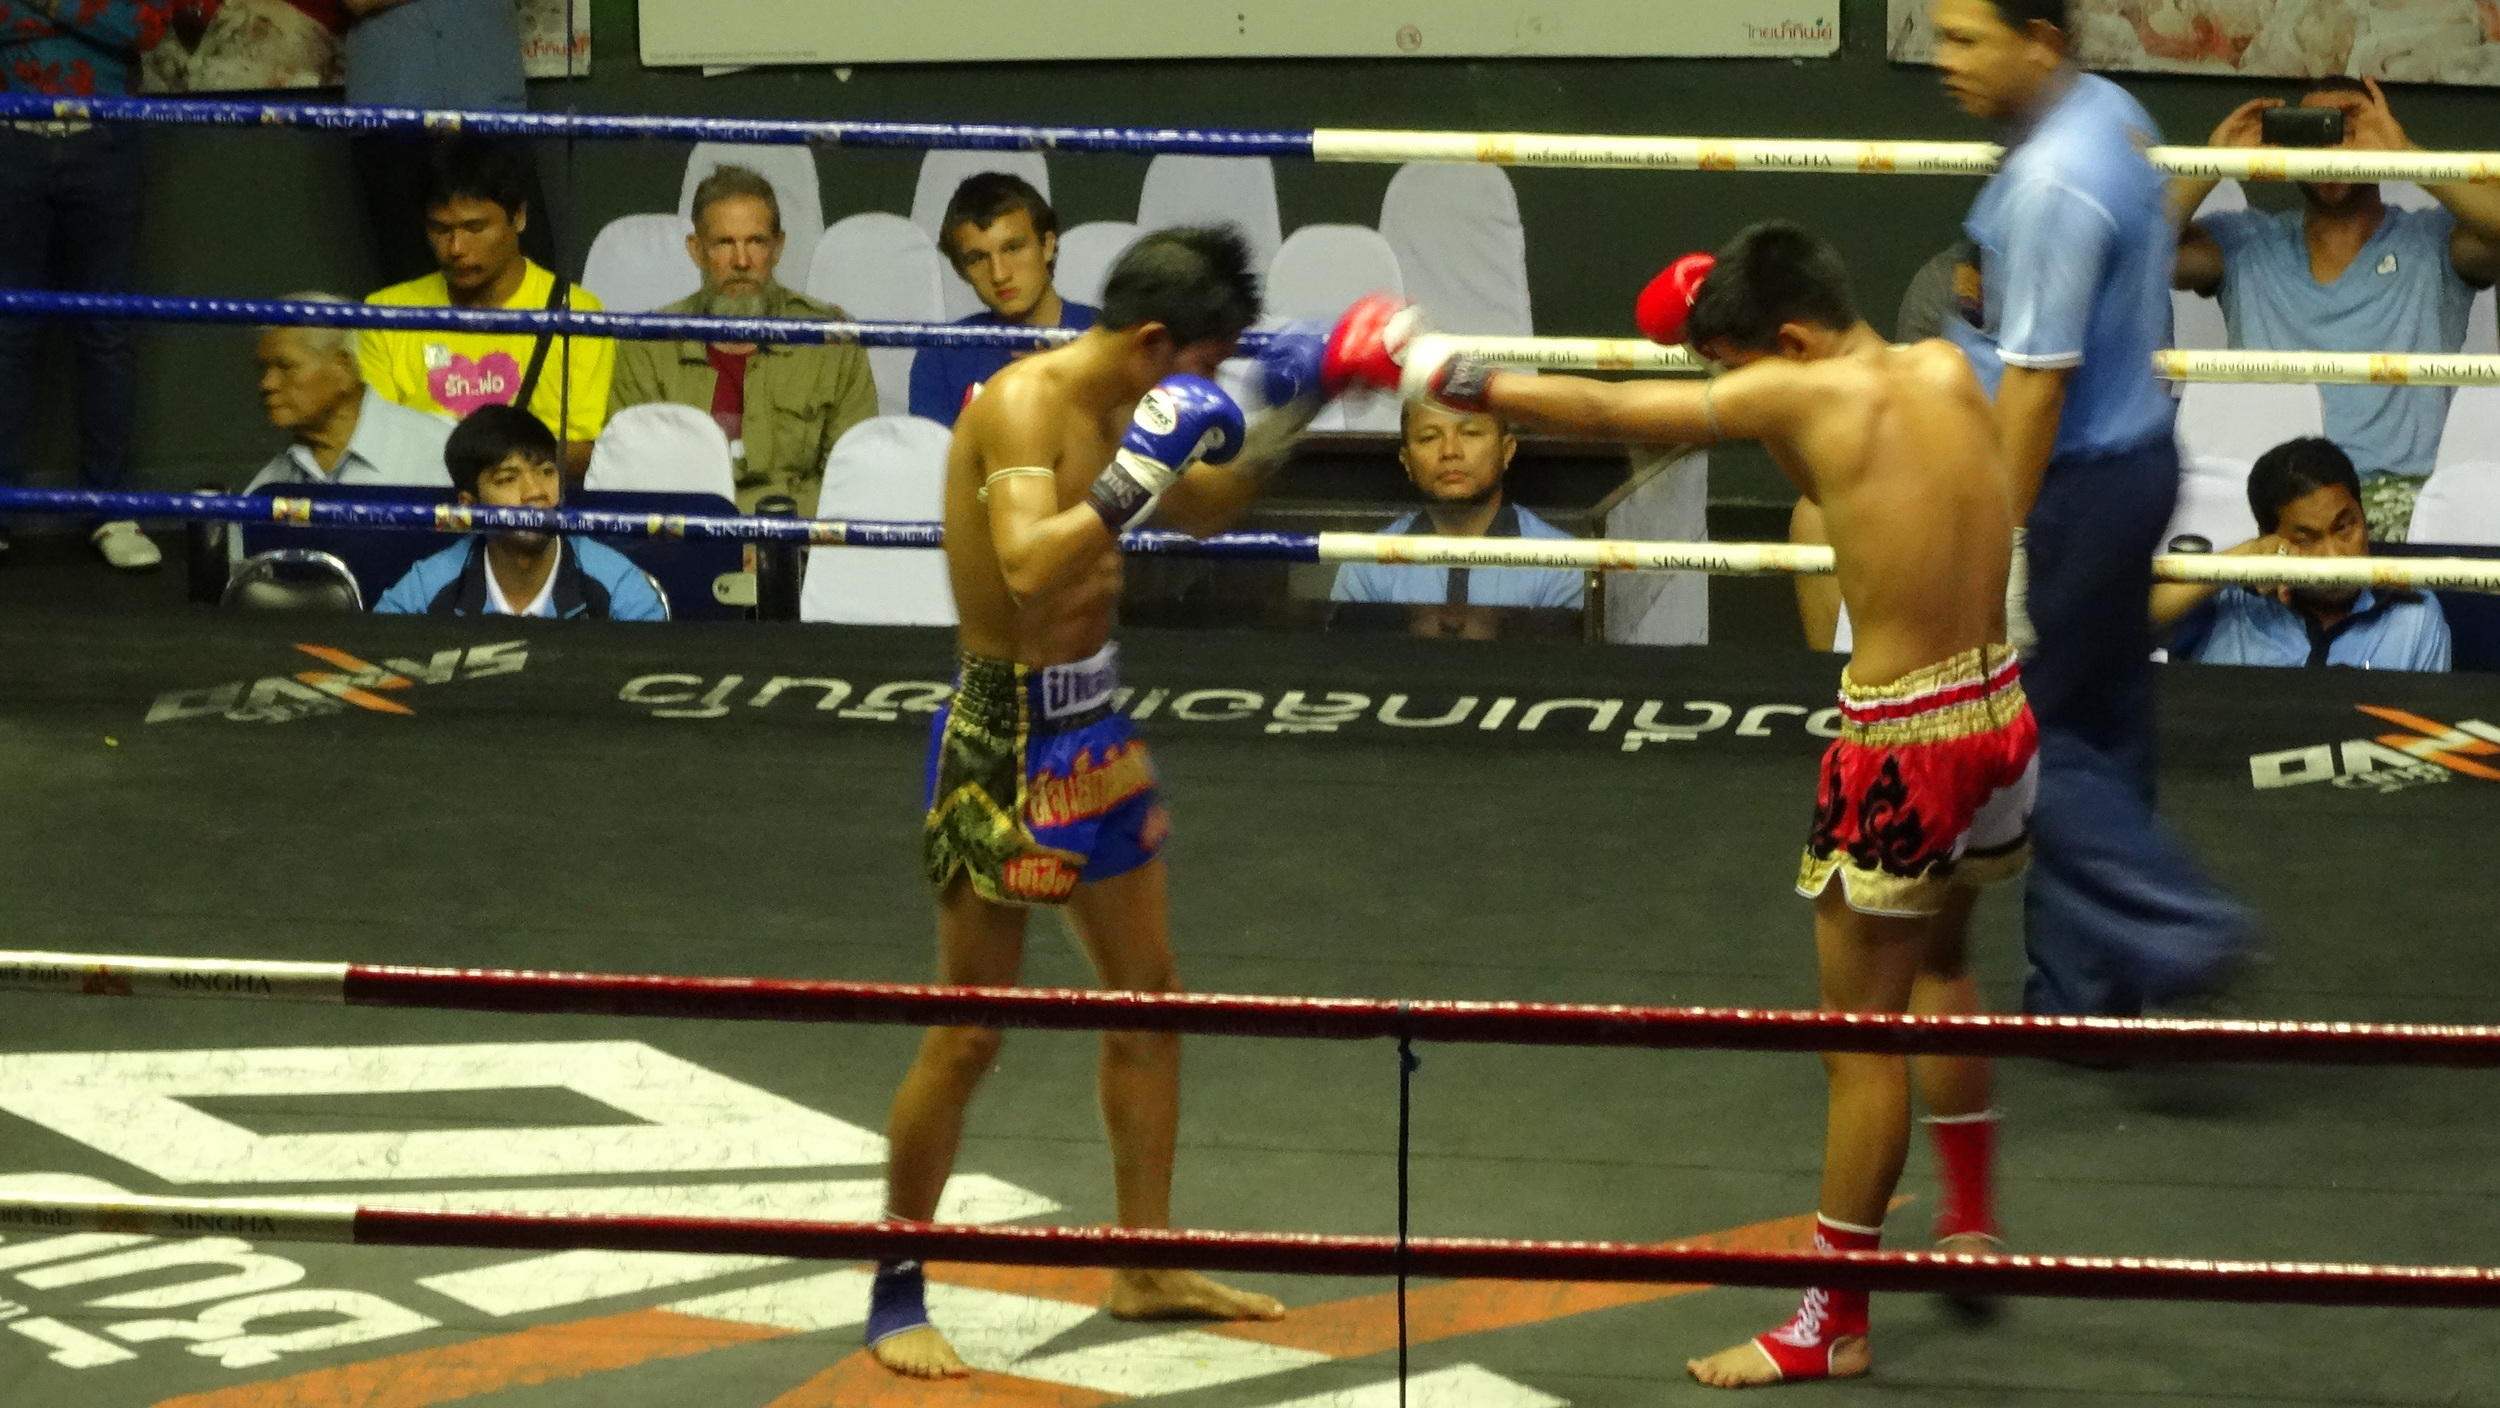 Muay Thai  fight at Rajadmnern Stadium. Thailand's number 1 sport. It appears to be more about the gambling than the fighting, which is still cool to see. Not taking anything away from the fighters, it's just there's a lot of betting.